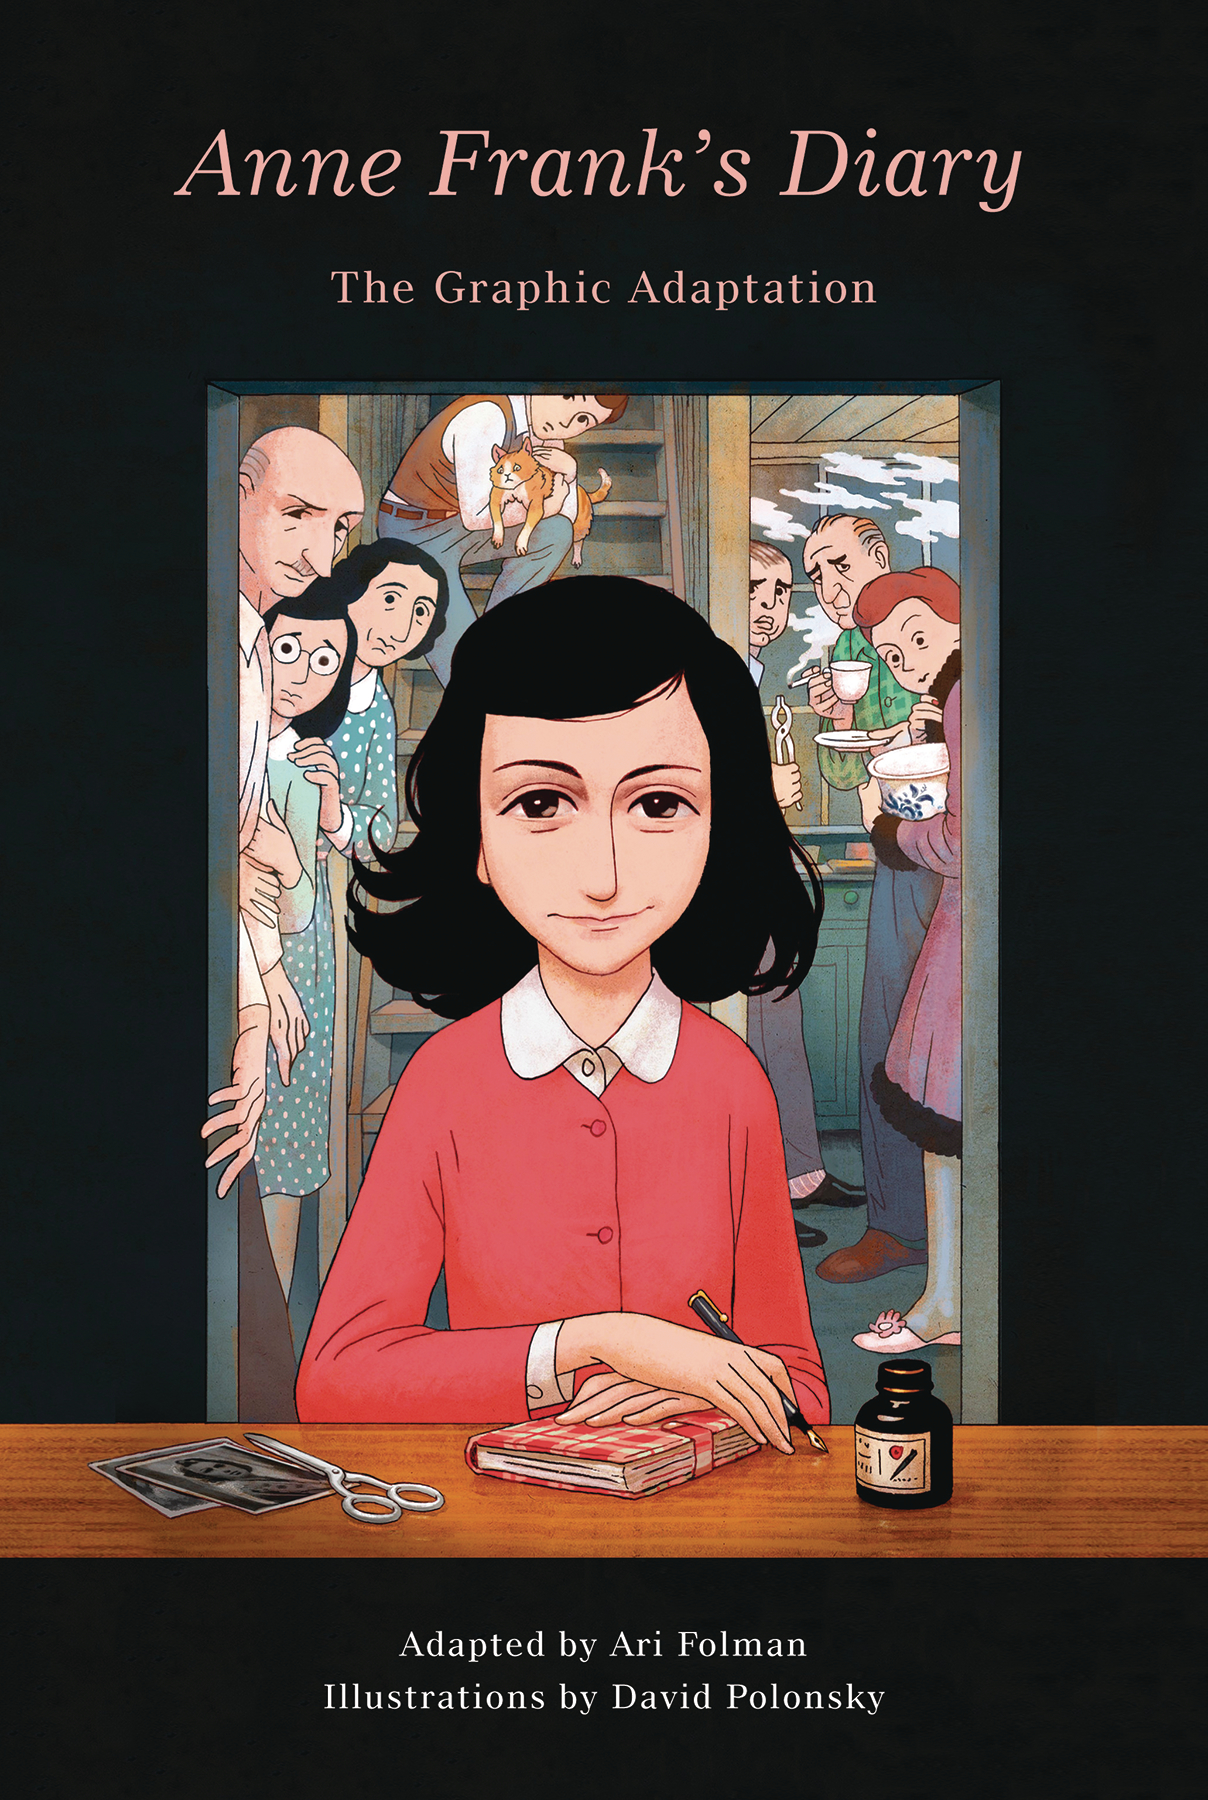 ANNE FRANK DIARY The Graphic Adaptation